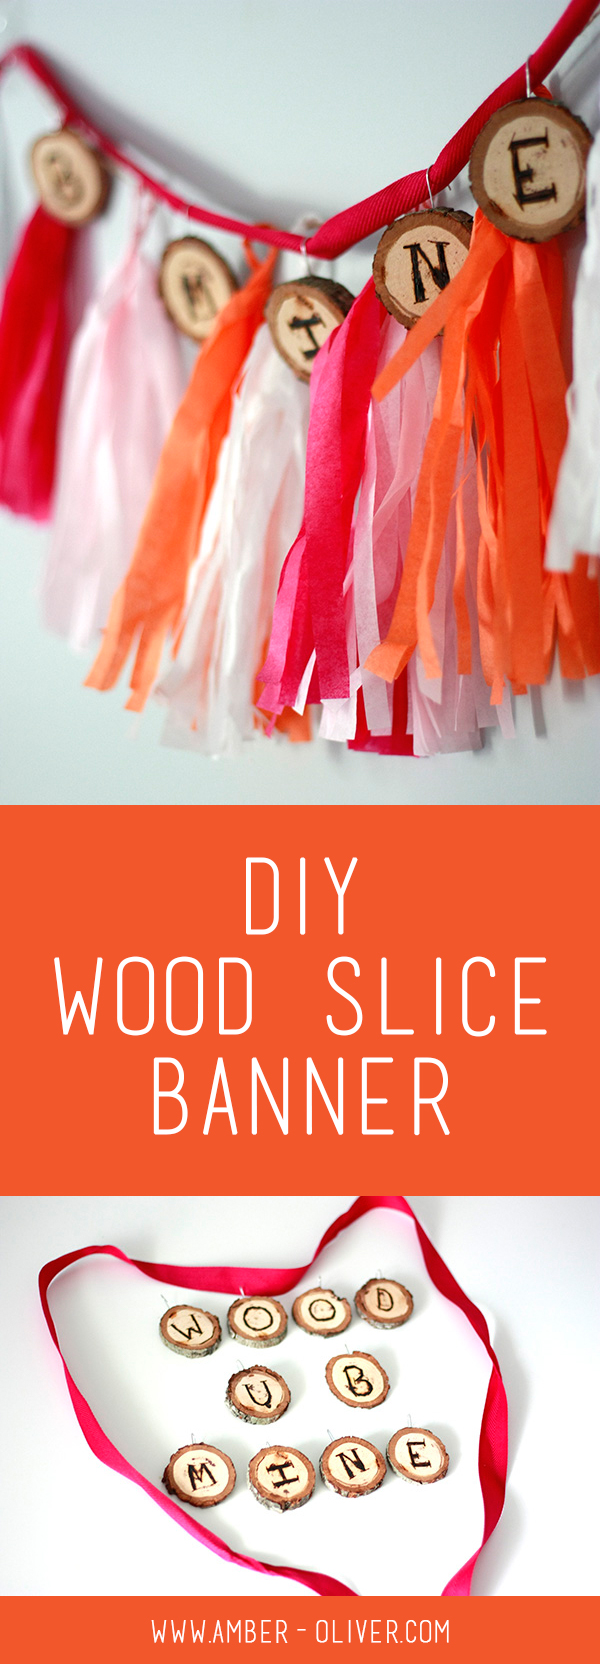 DIY Wood Slice Banner by Amber Oliver